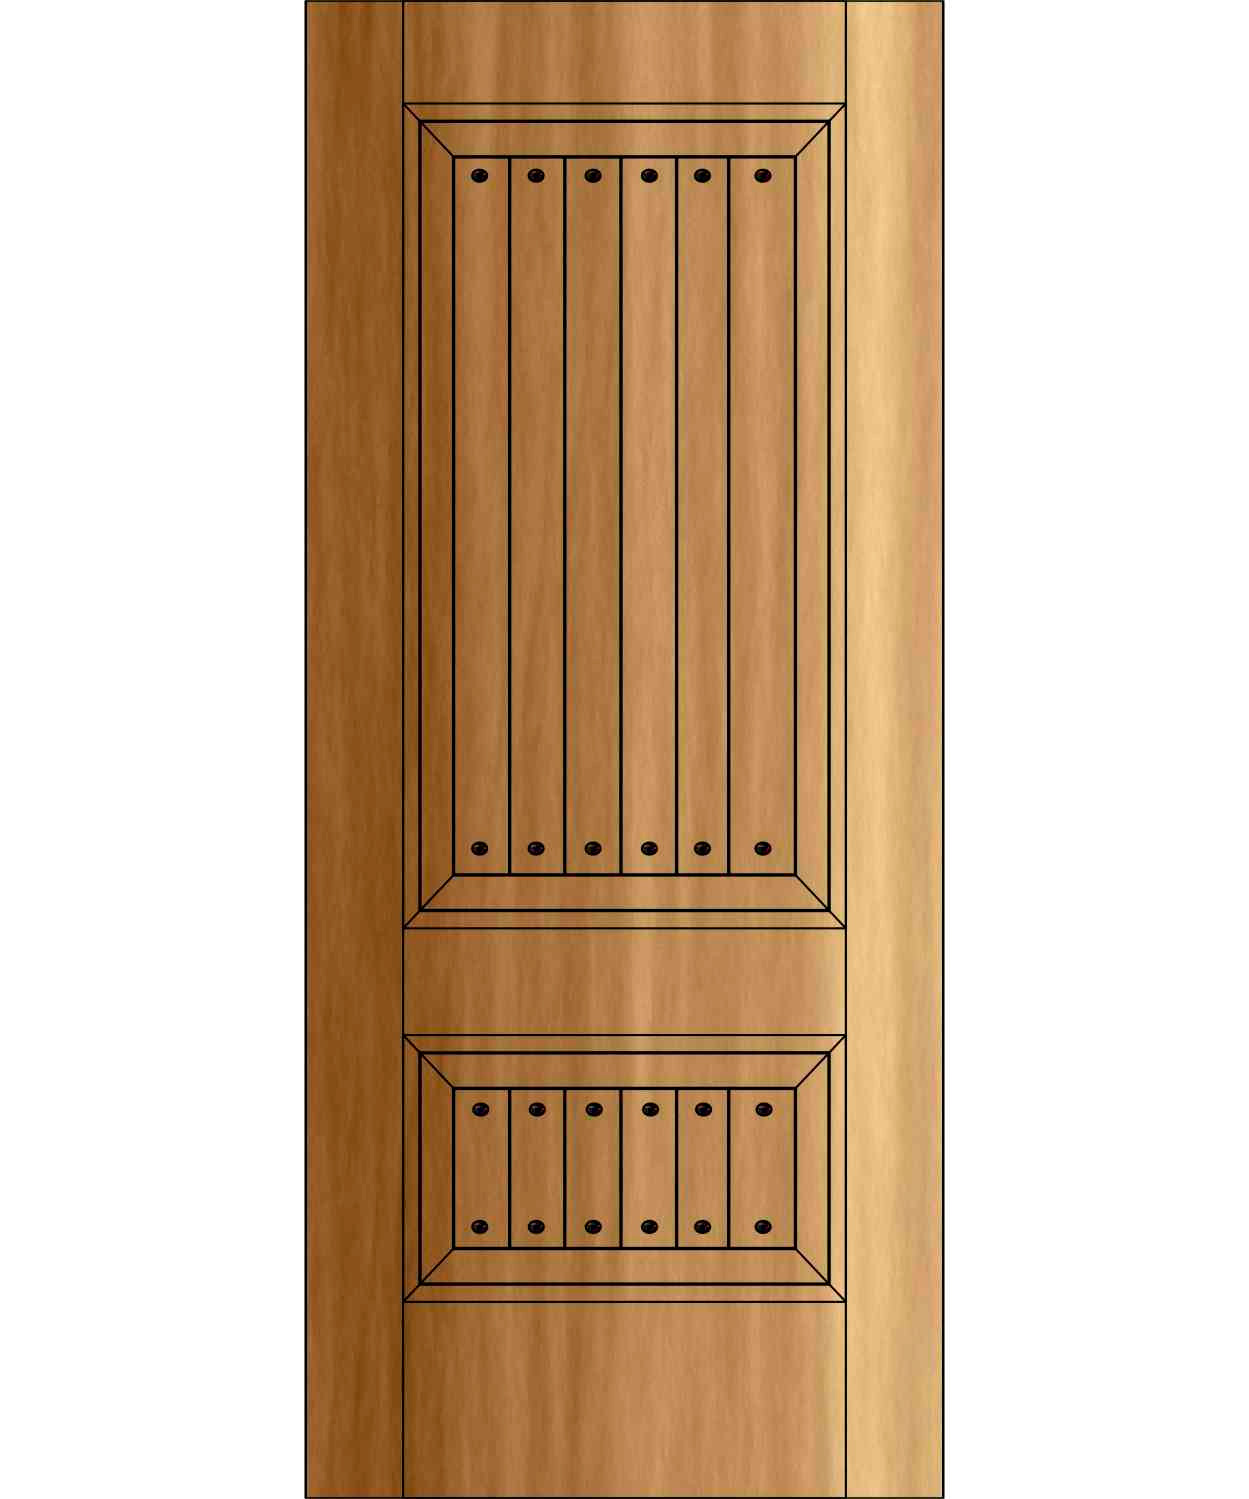 ED1102- Old World Rustic Door Two Panel  sc 1 st  Handcrafted Millworks & Old World Rustic Doors | Site Title pezcame.com